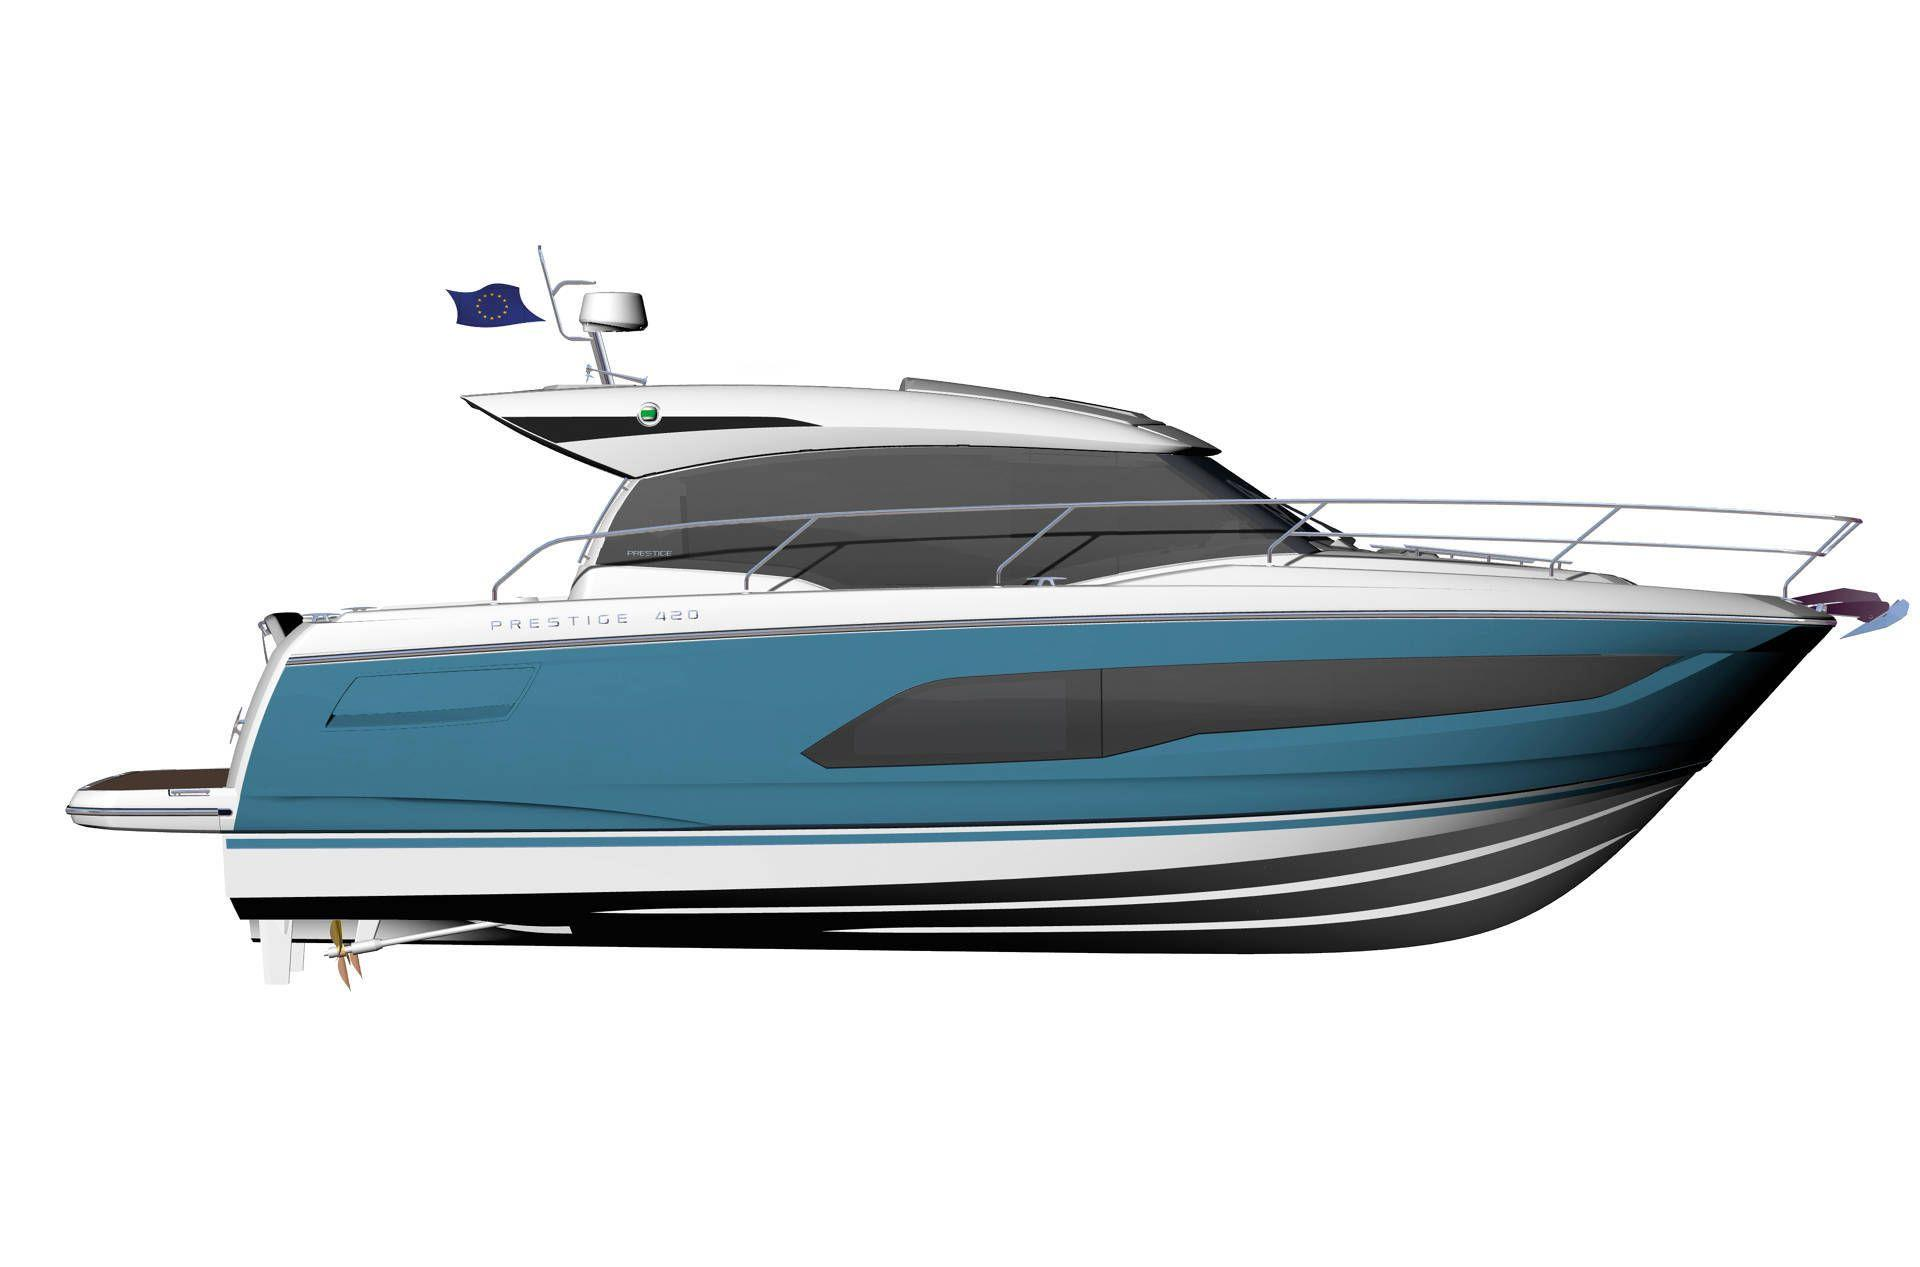 2021 Prestige 420 S #75561 inventory image at Sun Country Yachts in San Diego